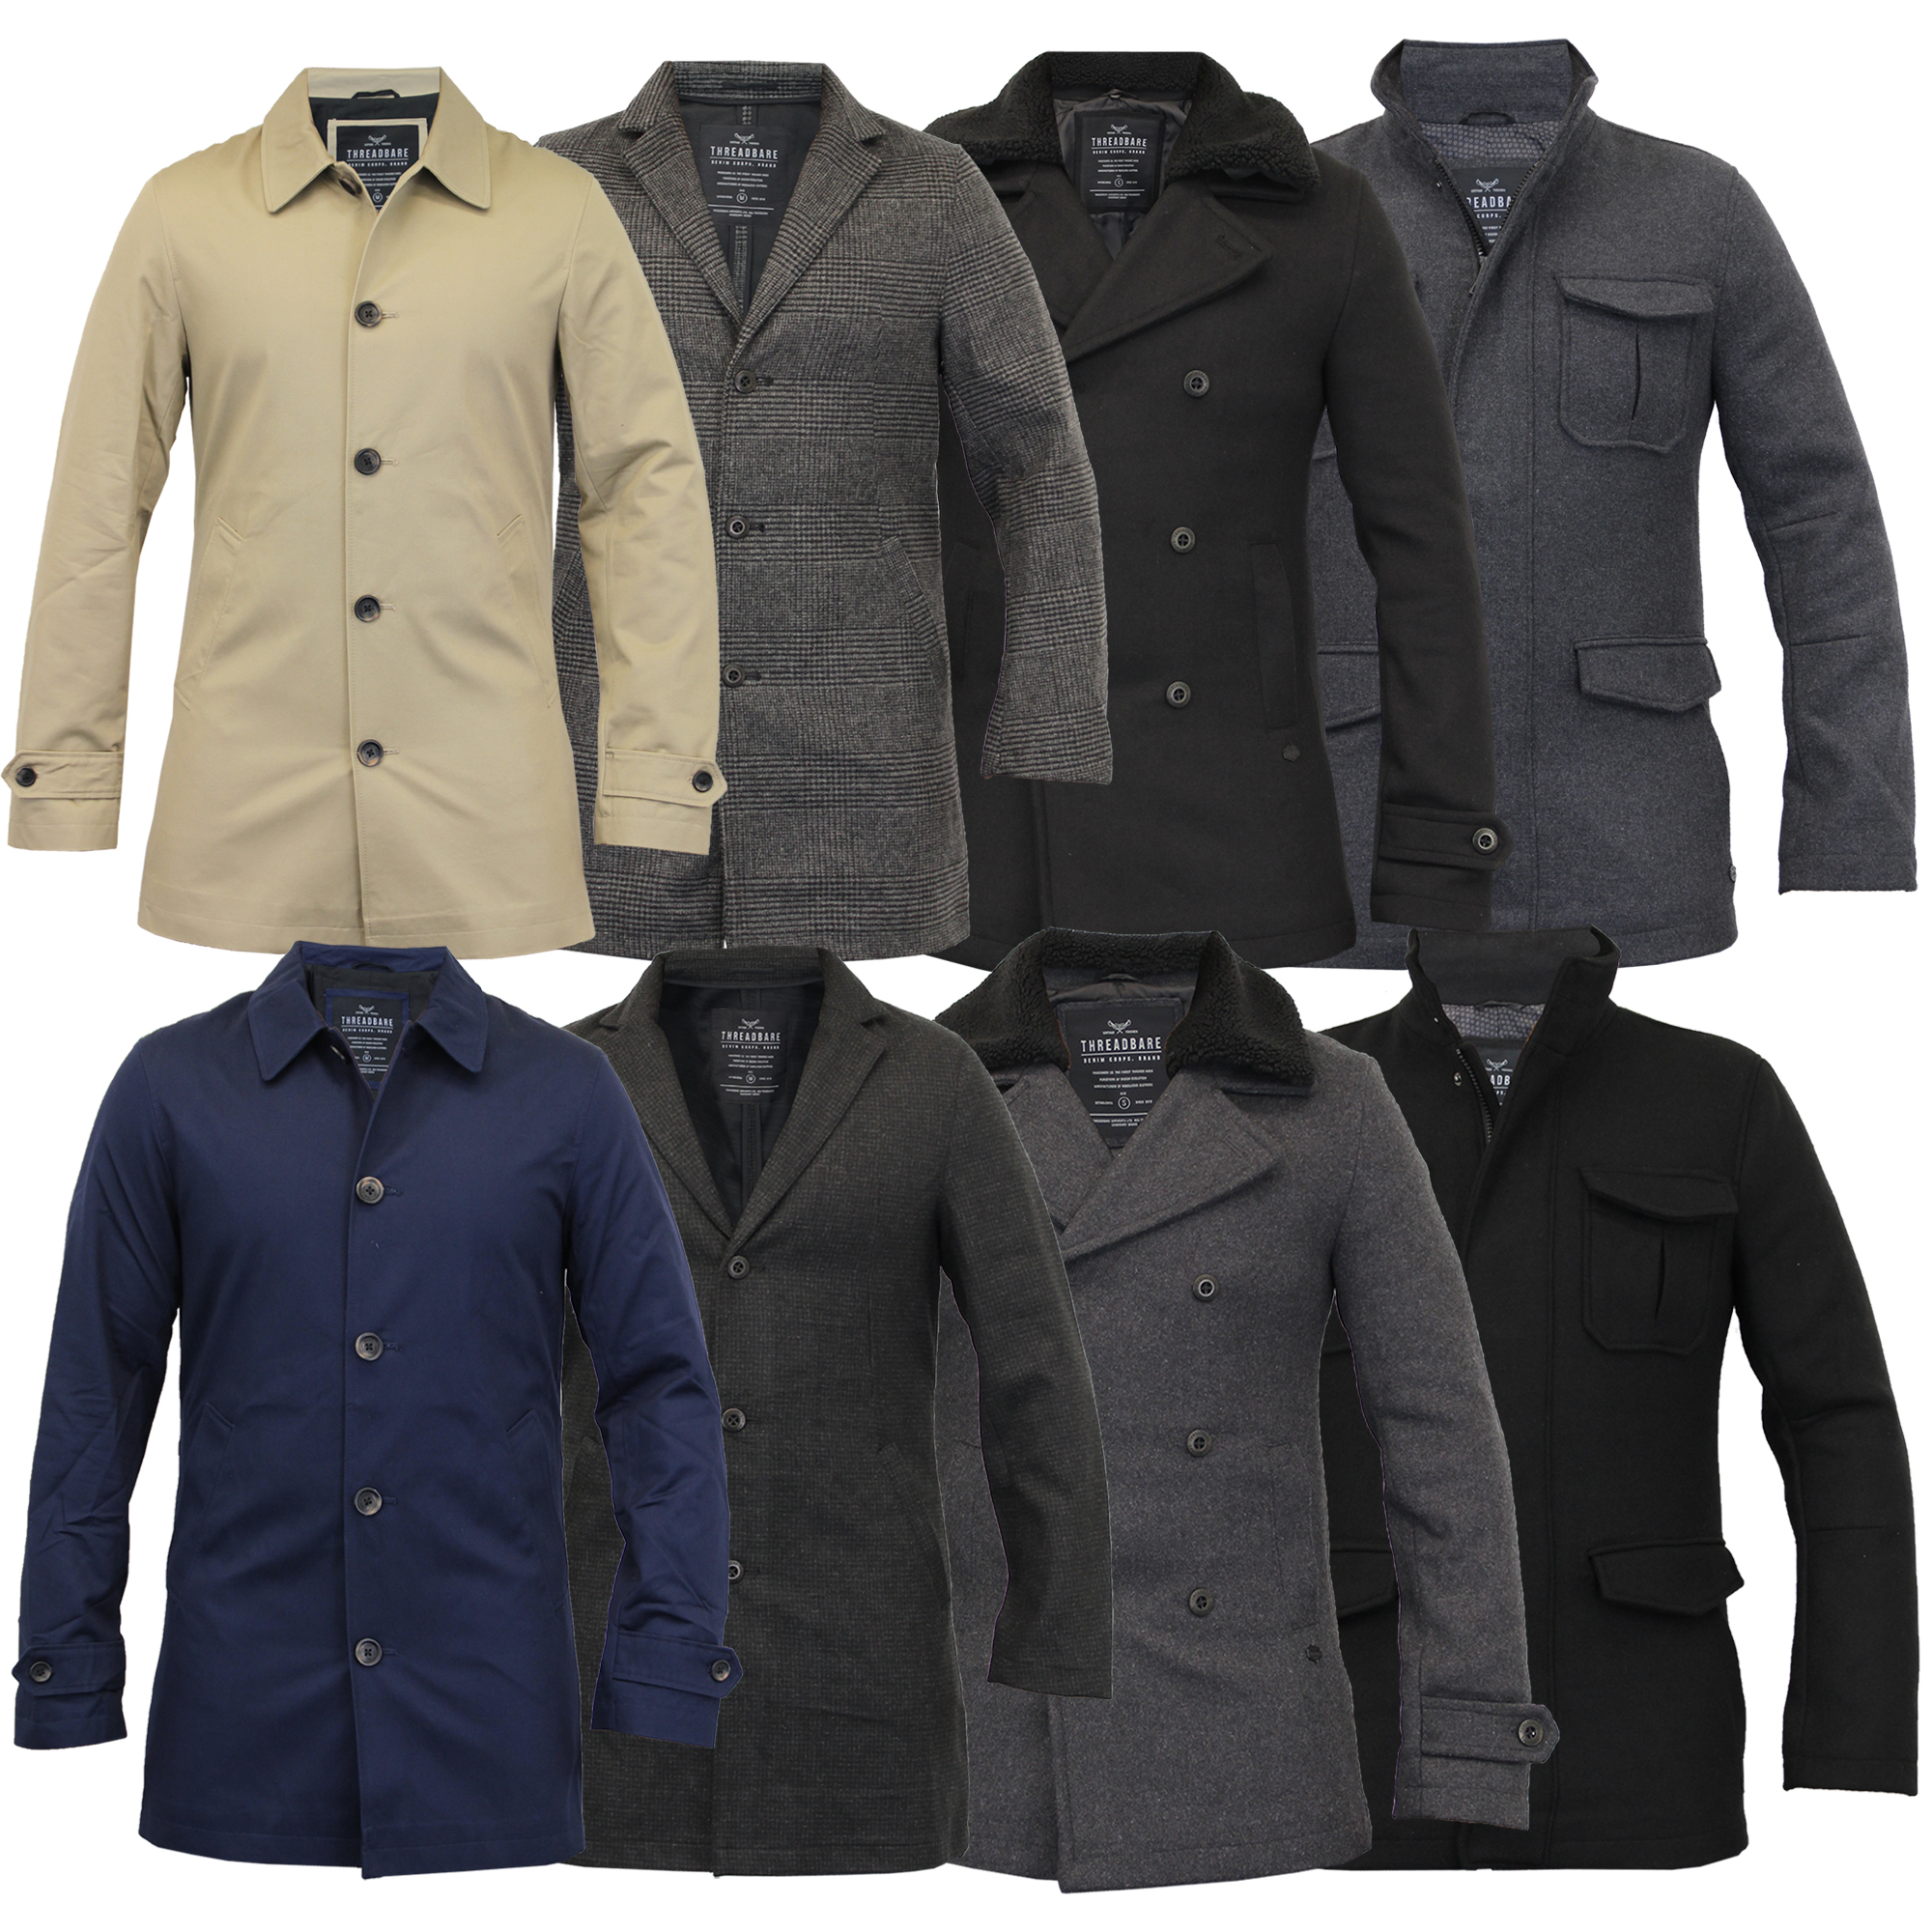 Mens Wool Mix Jacket Threadbare Trench Coat Blazer Tweed Sherpa ...